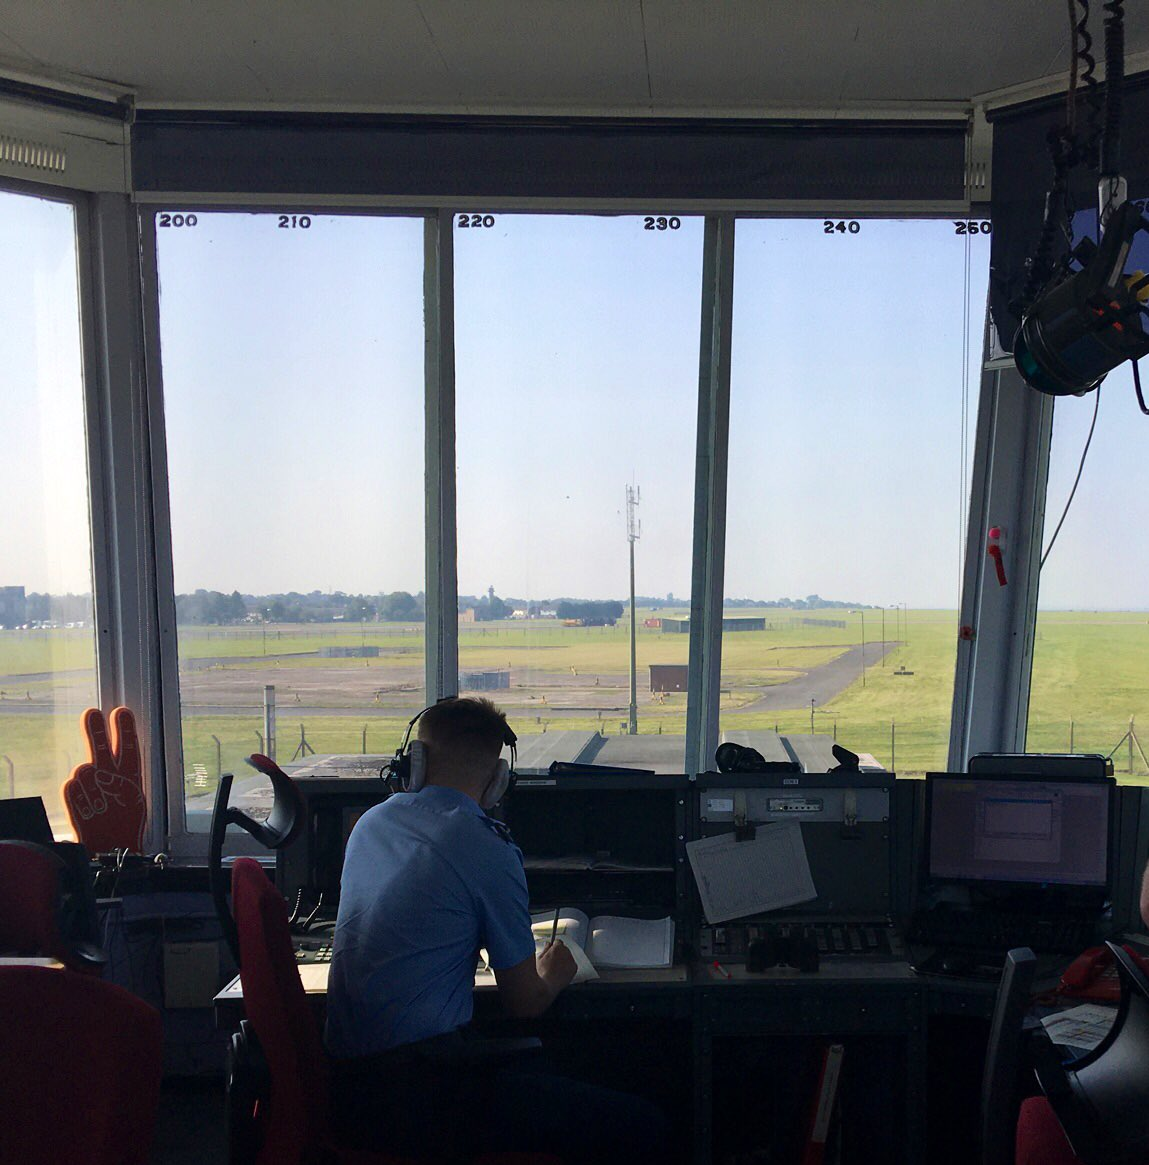 While @RAFScampton today I met SAC Benson who recently checked out as an Air Traffic Assistant having previously been employed in the Control and Reoprting Centre.  Great demonstration of Trade Group 7 potential.  Cross-training and multi-skilling is the way ahead! https://t.co/1OMxXGxVUz